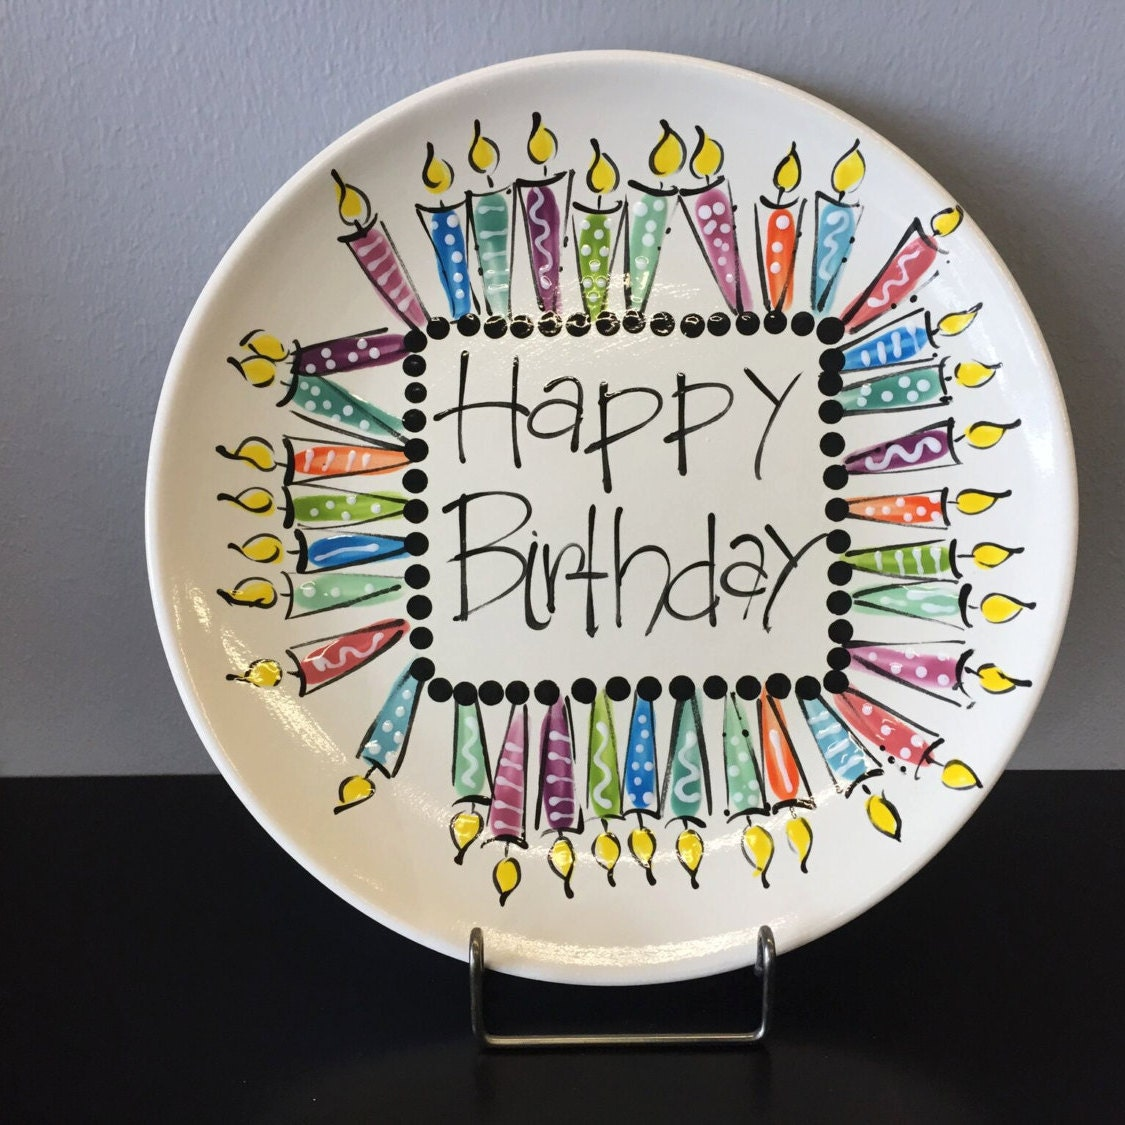 Happy Birthday Cake Ceramic Plate